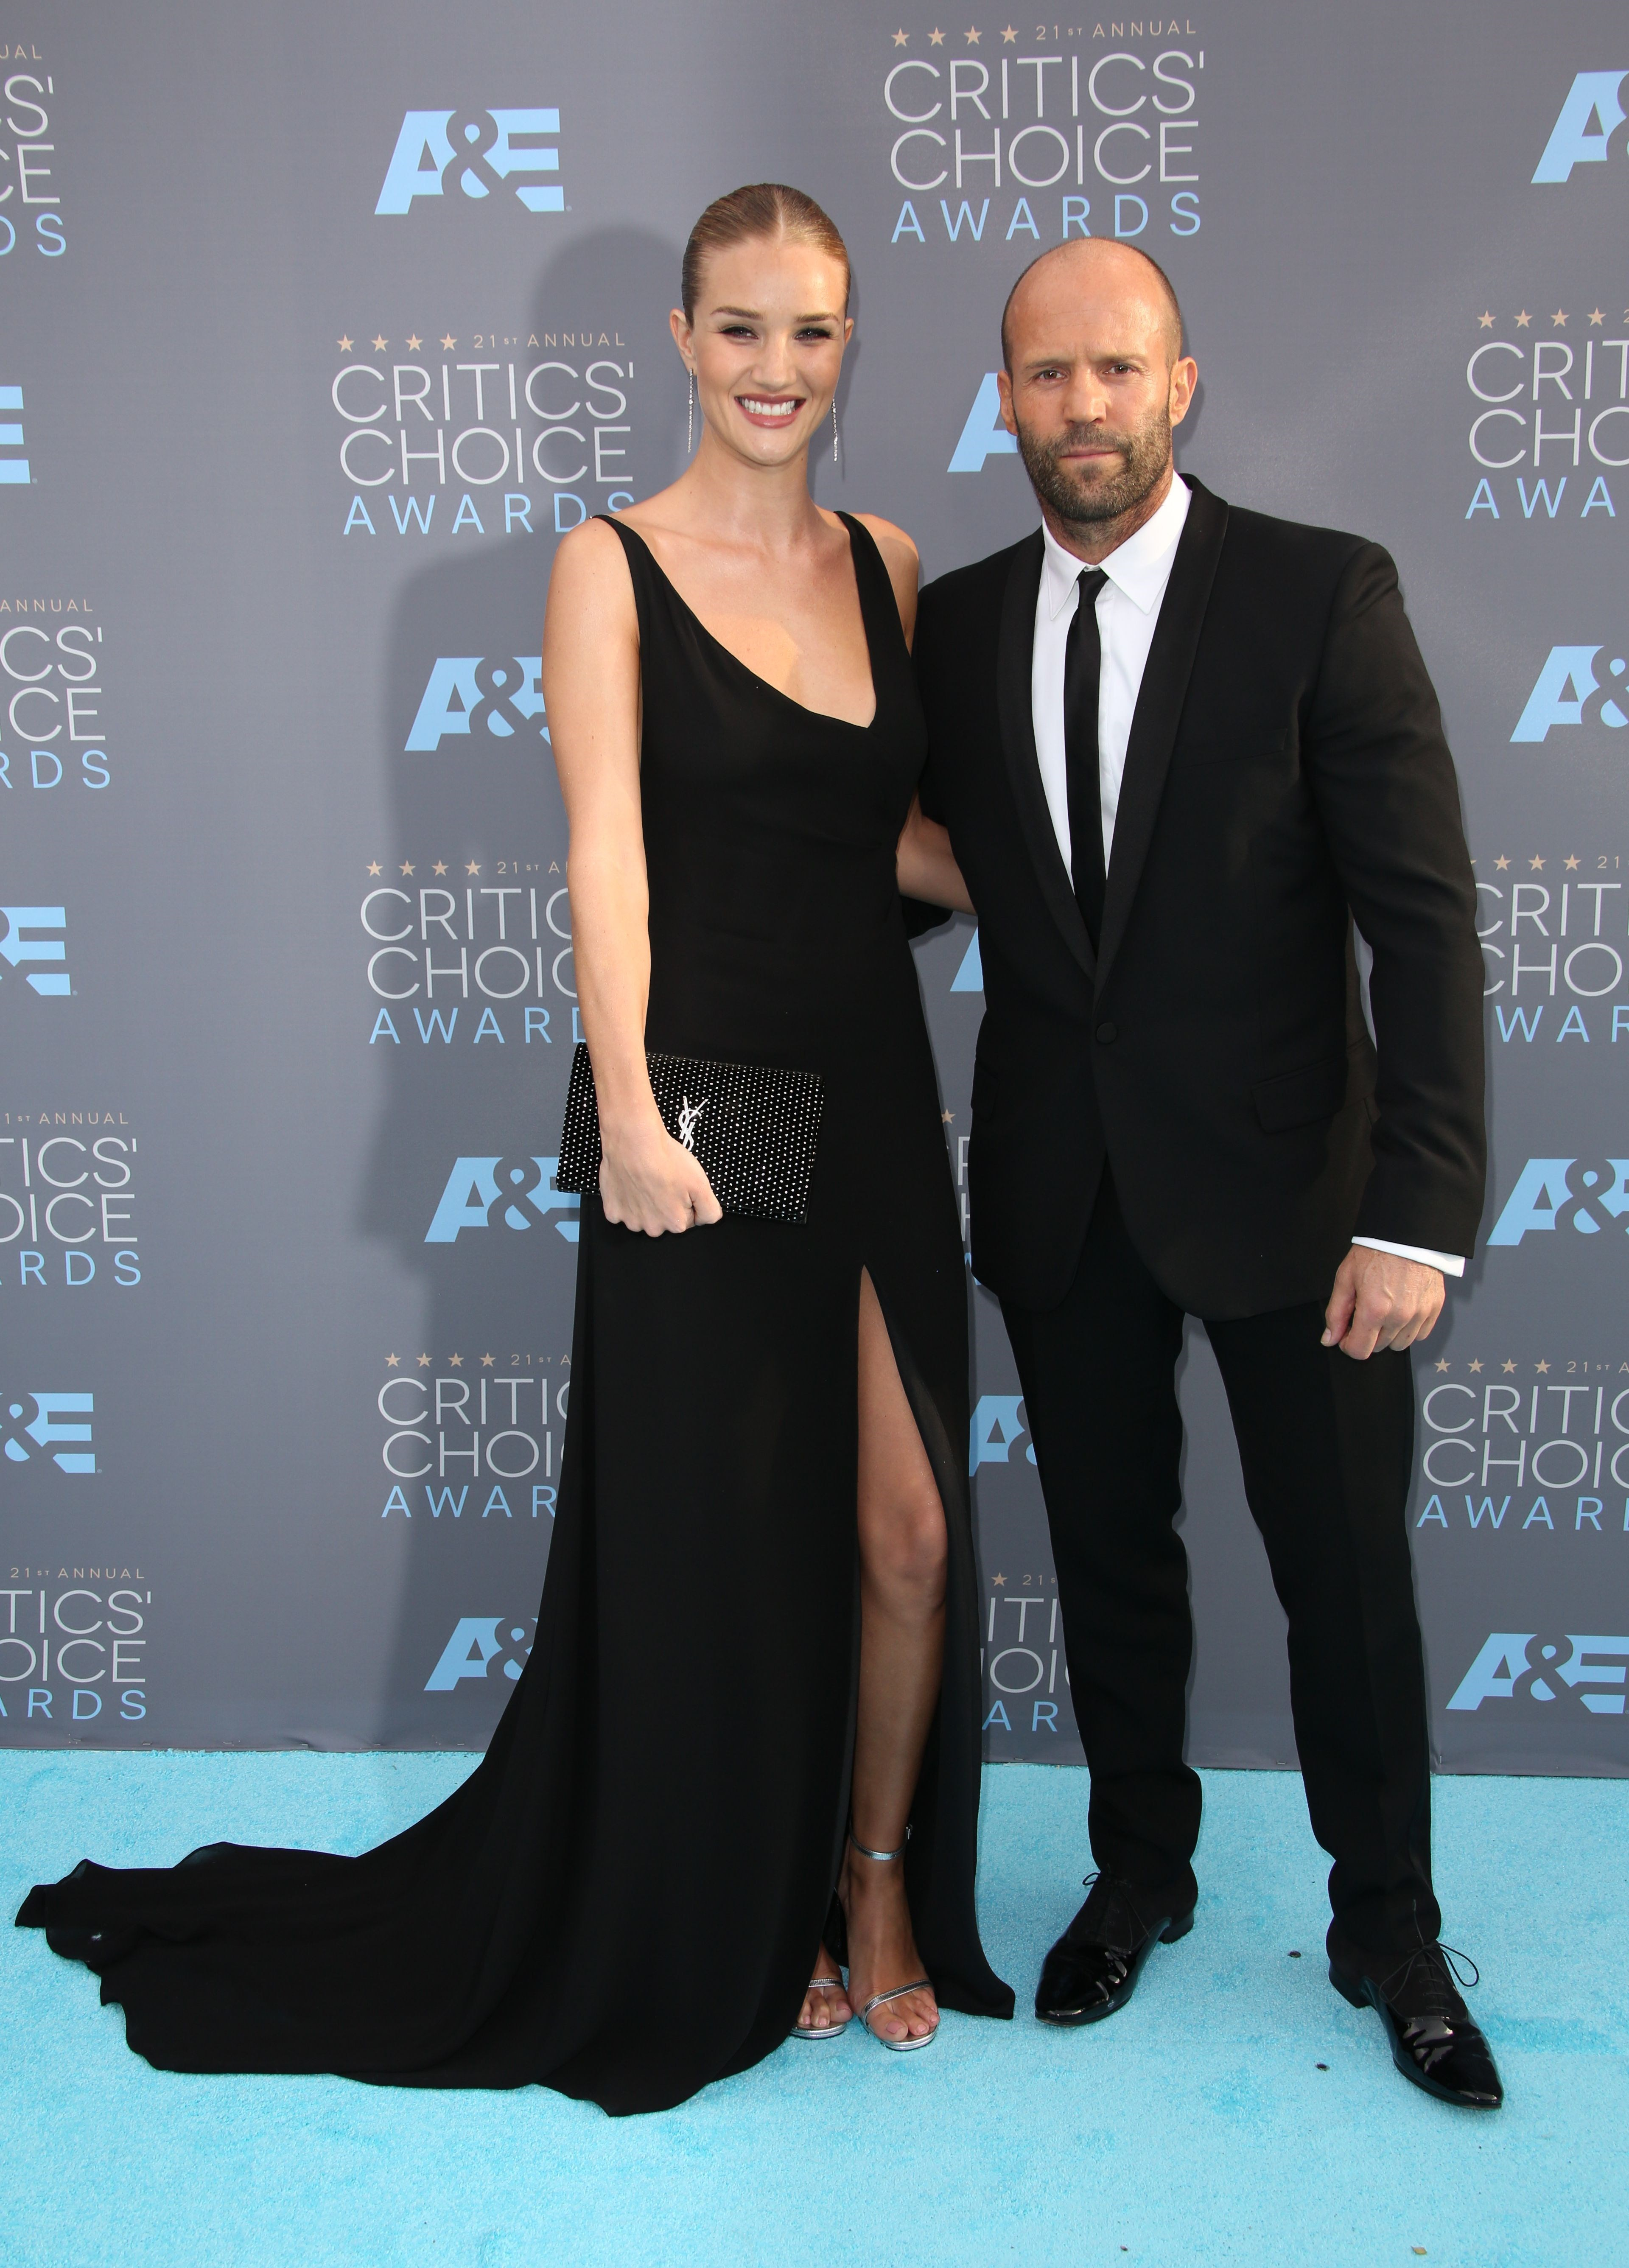 Jason Statham mum on Rosie Huntington Whitely wedding